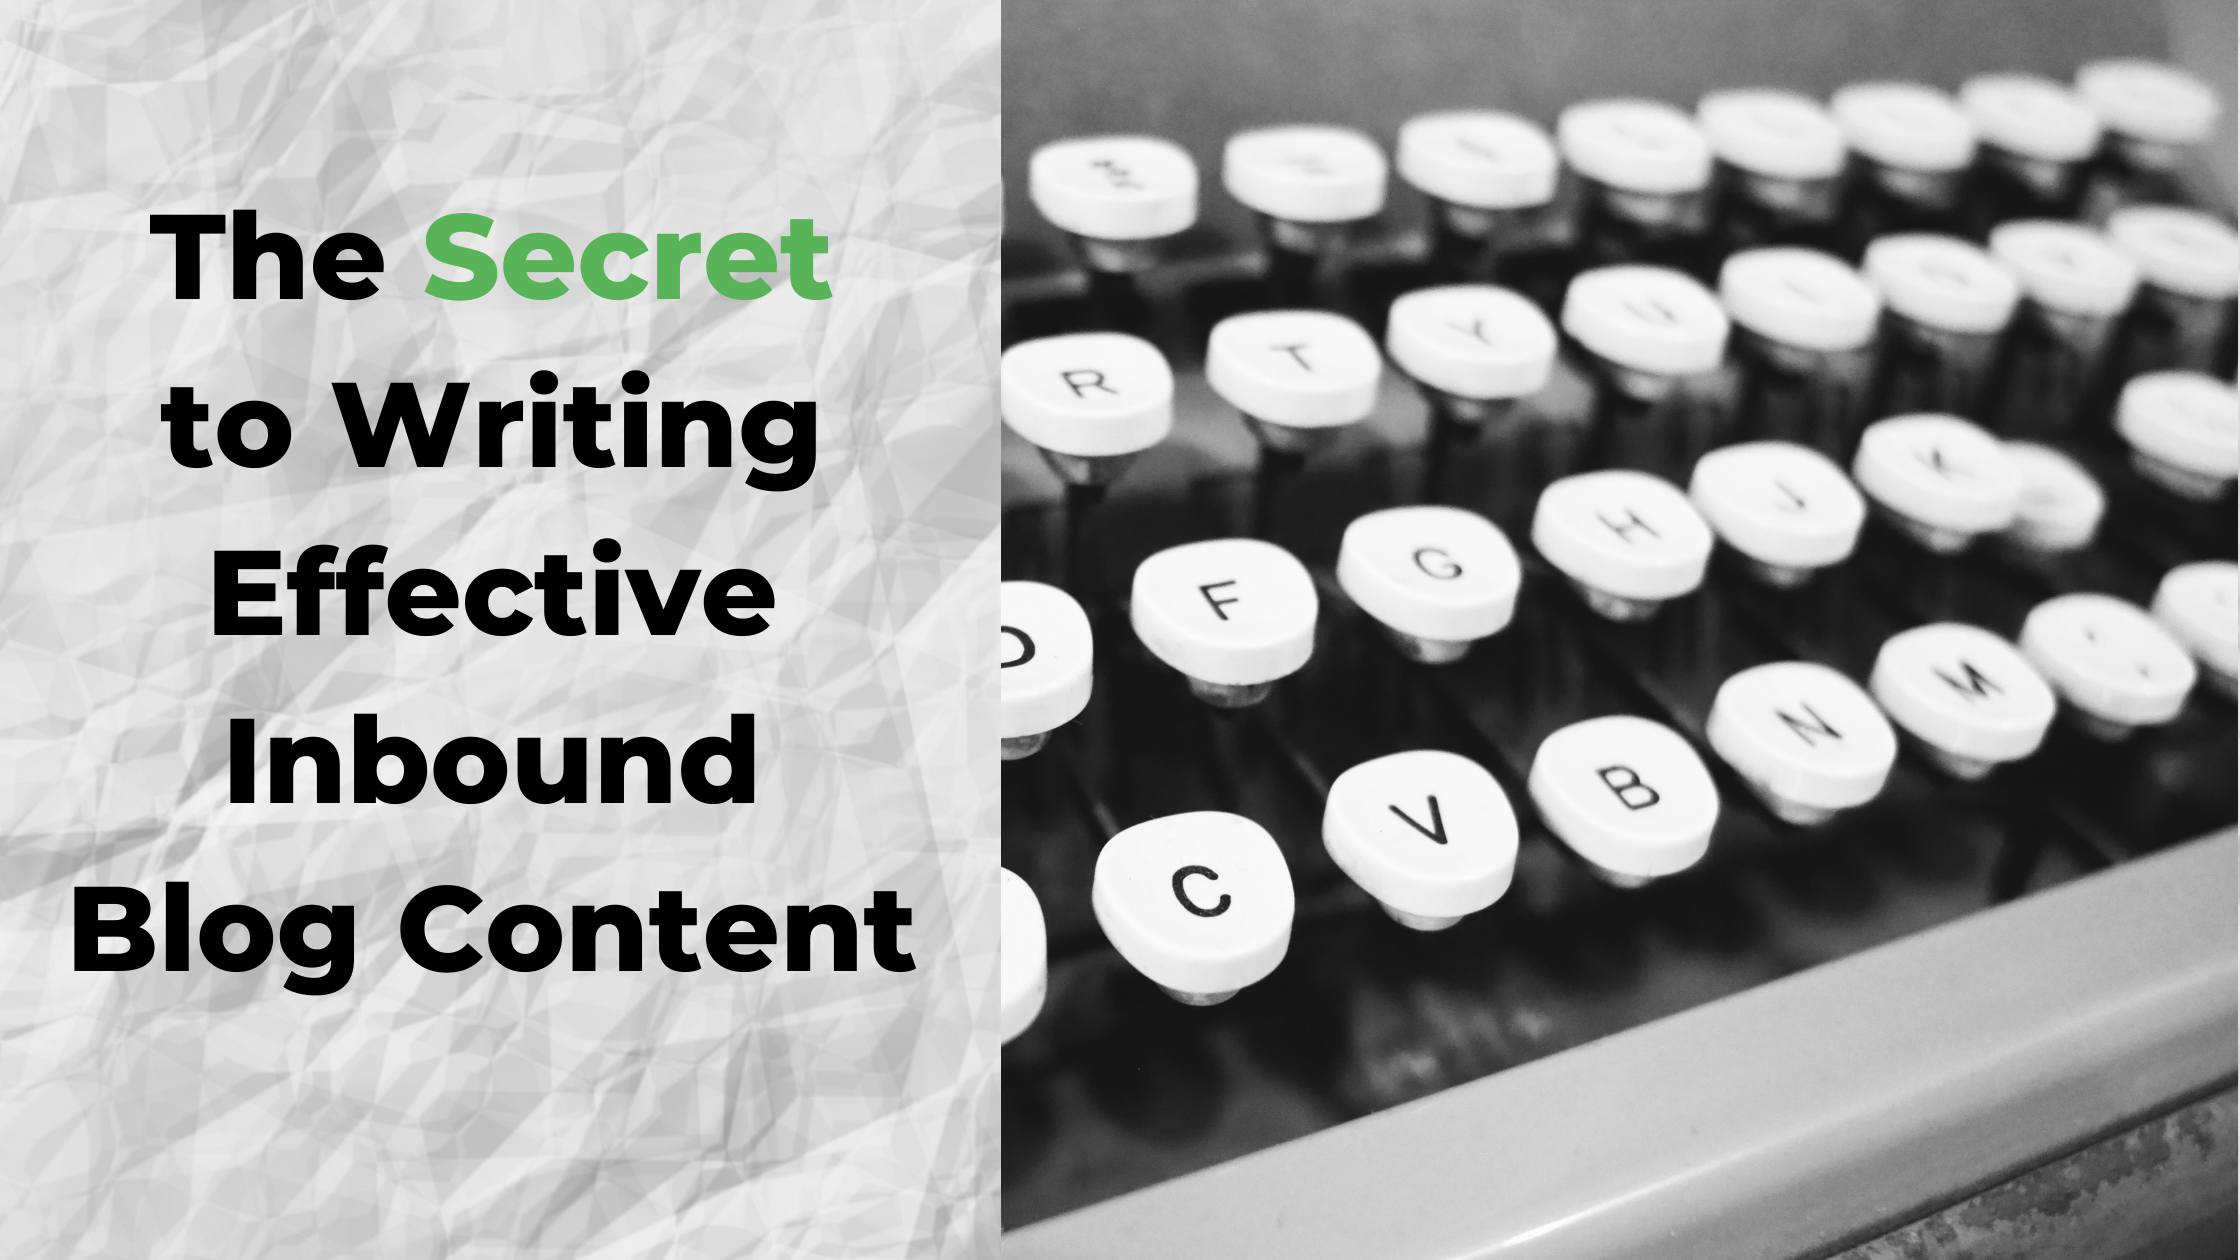 The Secret to Writing Effective Inbound Blog Content